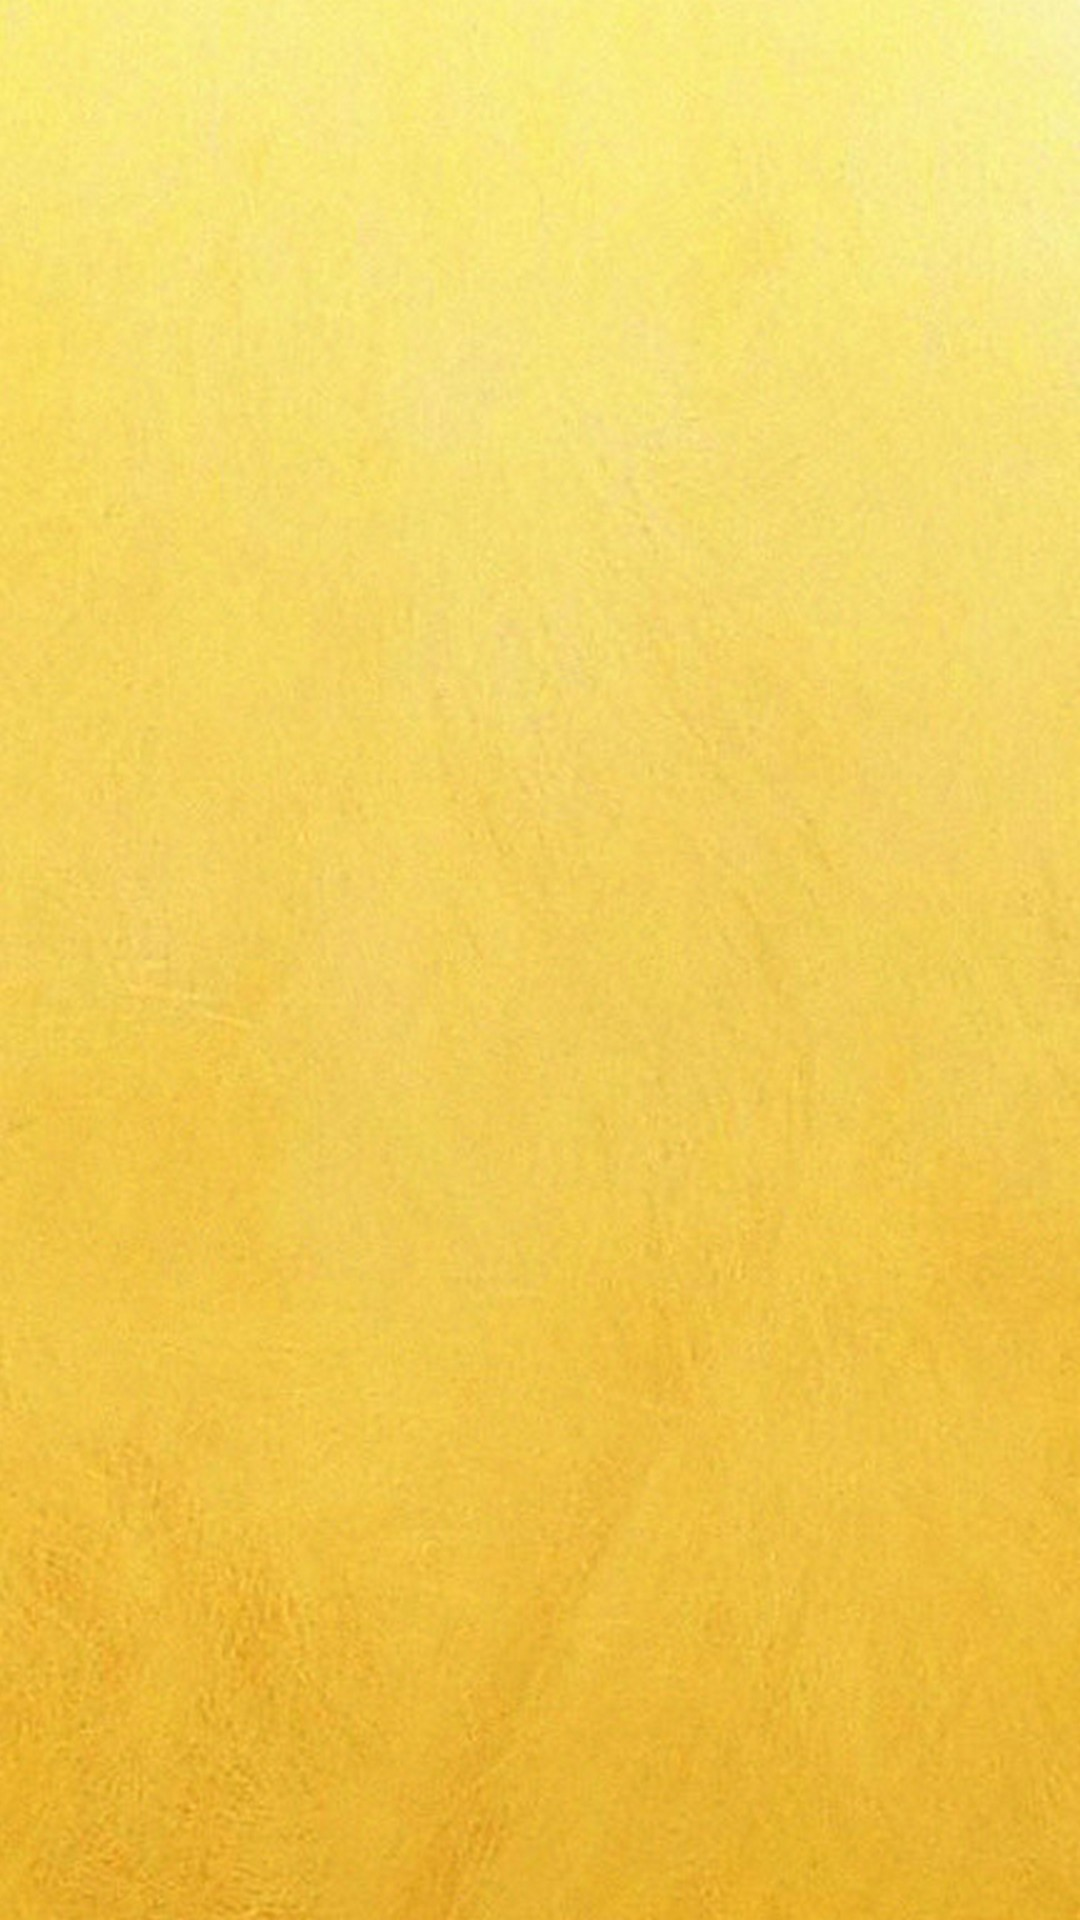 Wallpaper iPhone Plain Gold 2020 3D iPhone Wallpaper 1080x1920